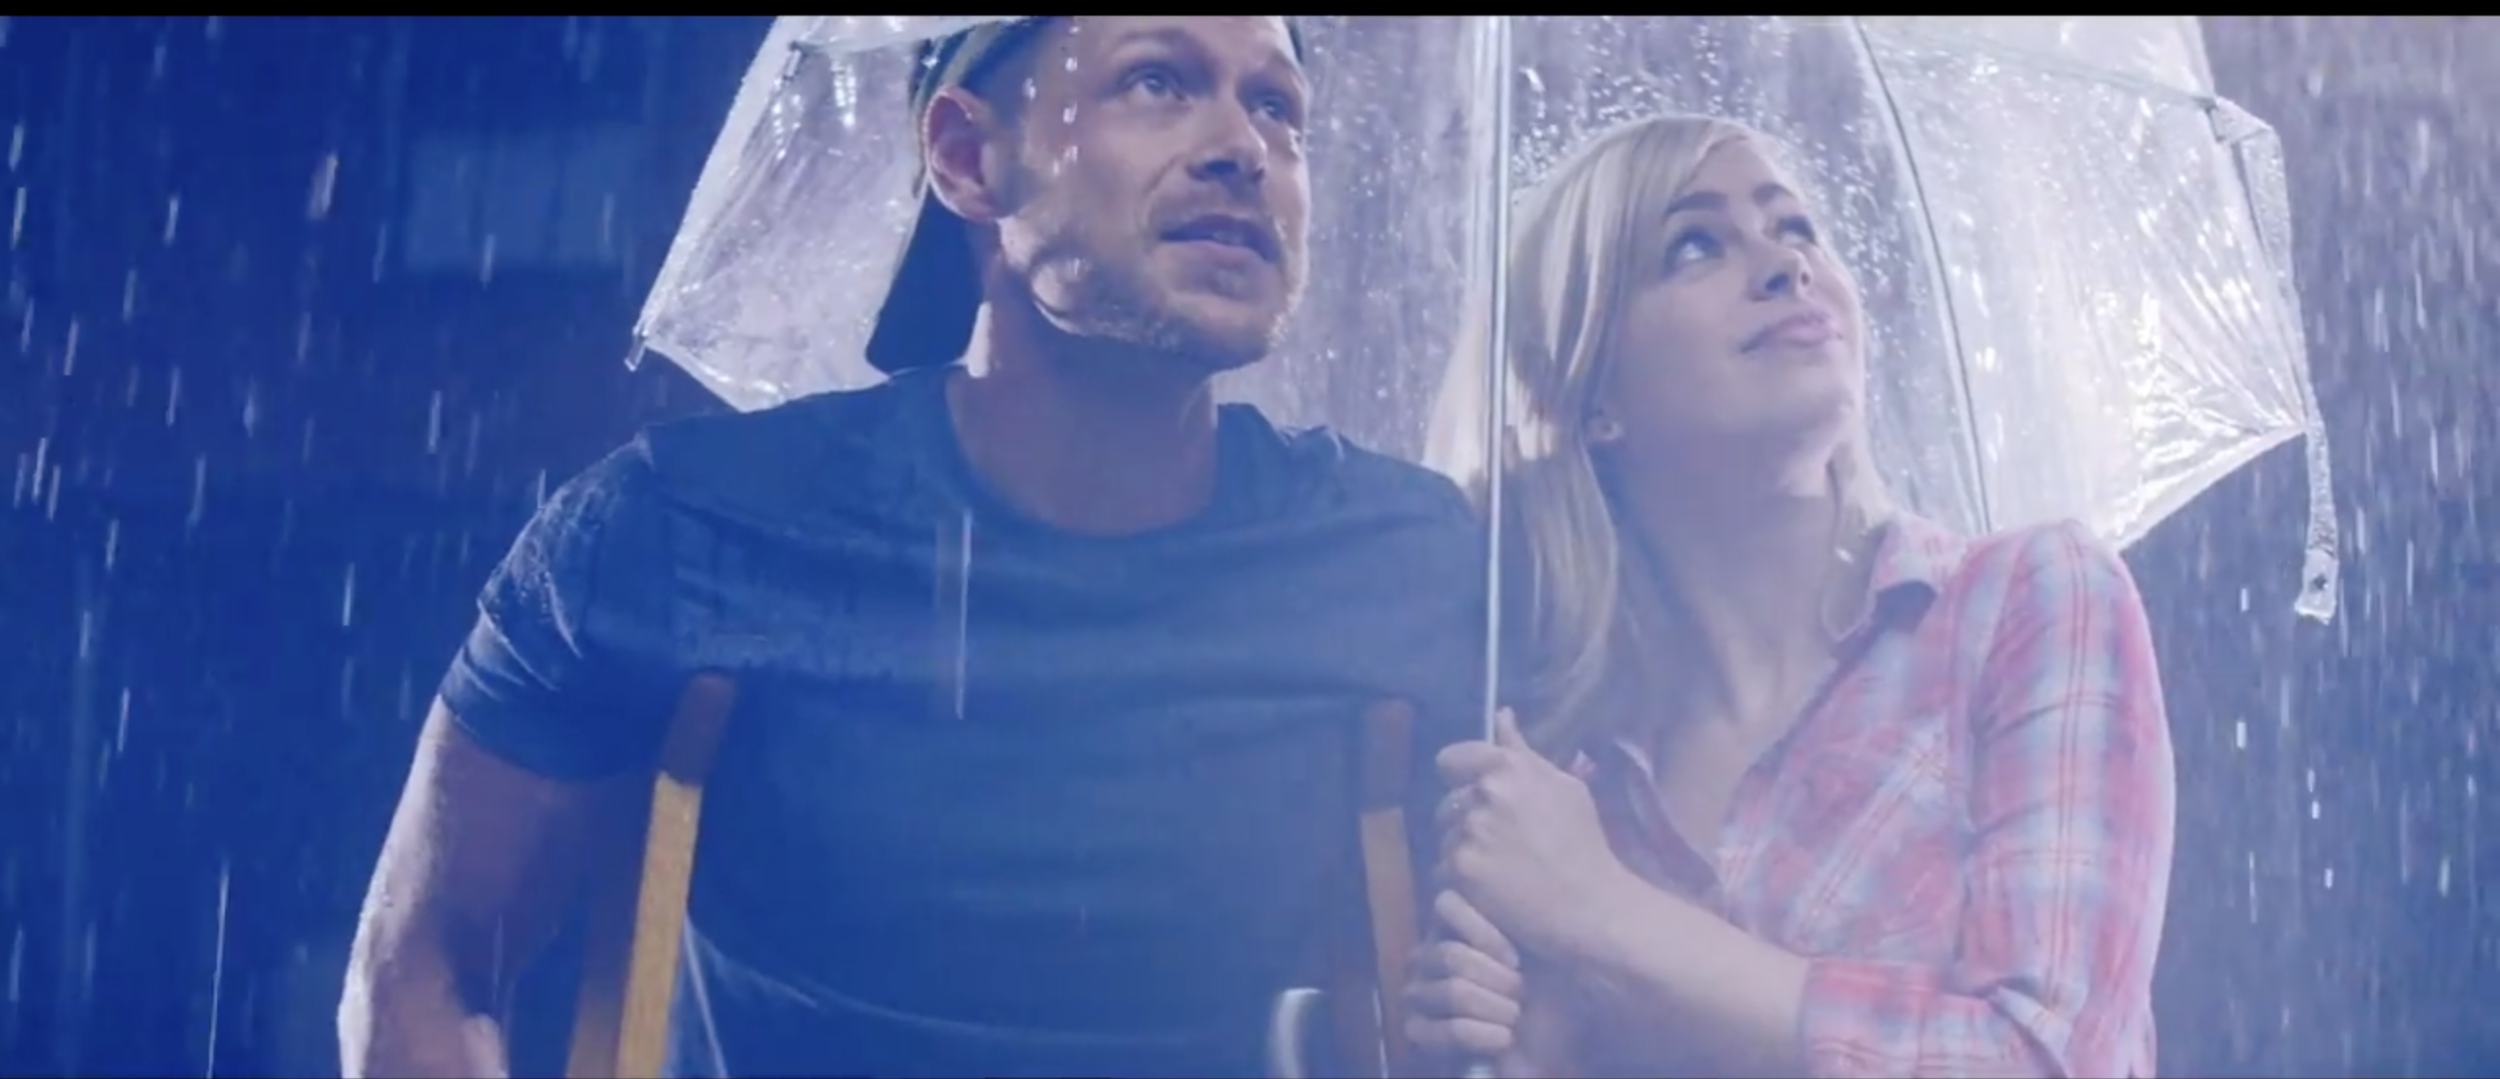 Like I'm Gonna Love You- Meghan Trainor featuring John Legend  More about the experience and other music videos featured on my expanded blog:  www.skyonthefly.com